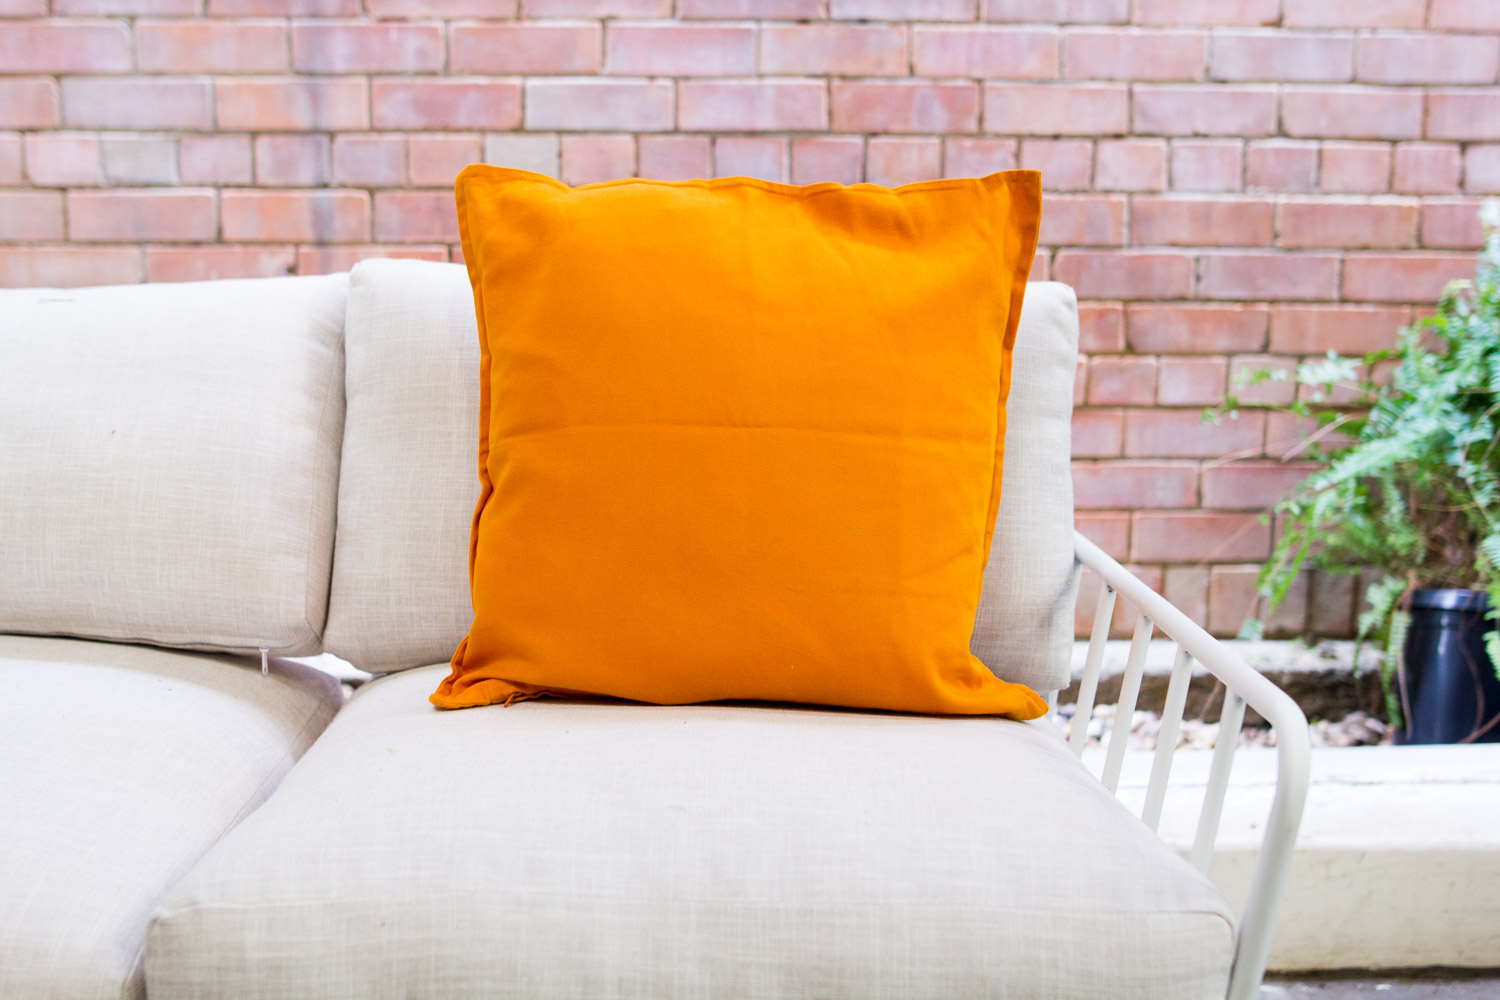 AVIDEAS-INVENTORY-SOFTFURNISHINGS-Cotton Burnt Orange Cushion.jpg